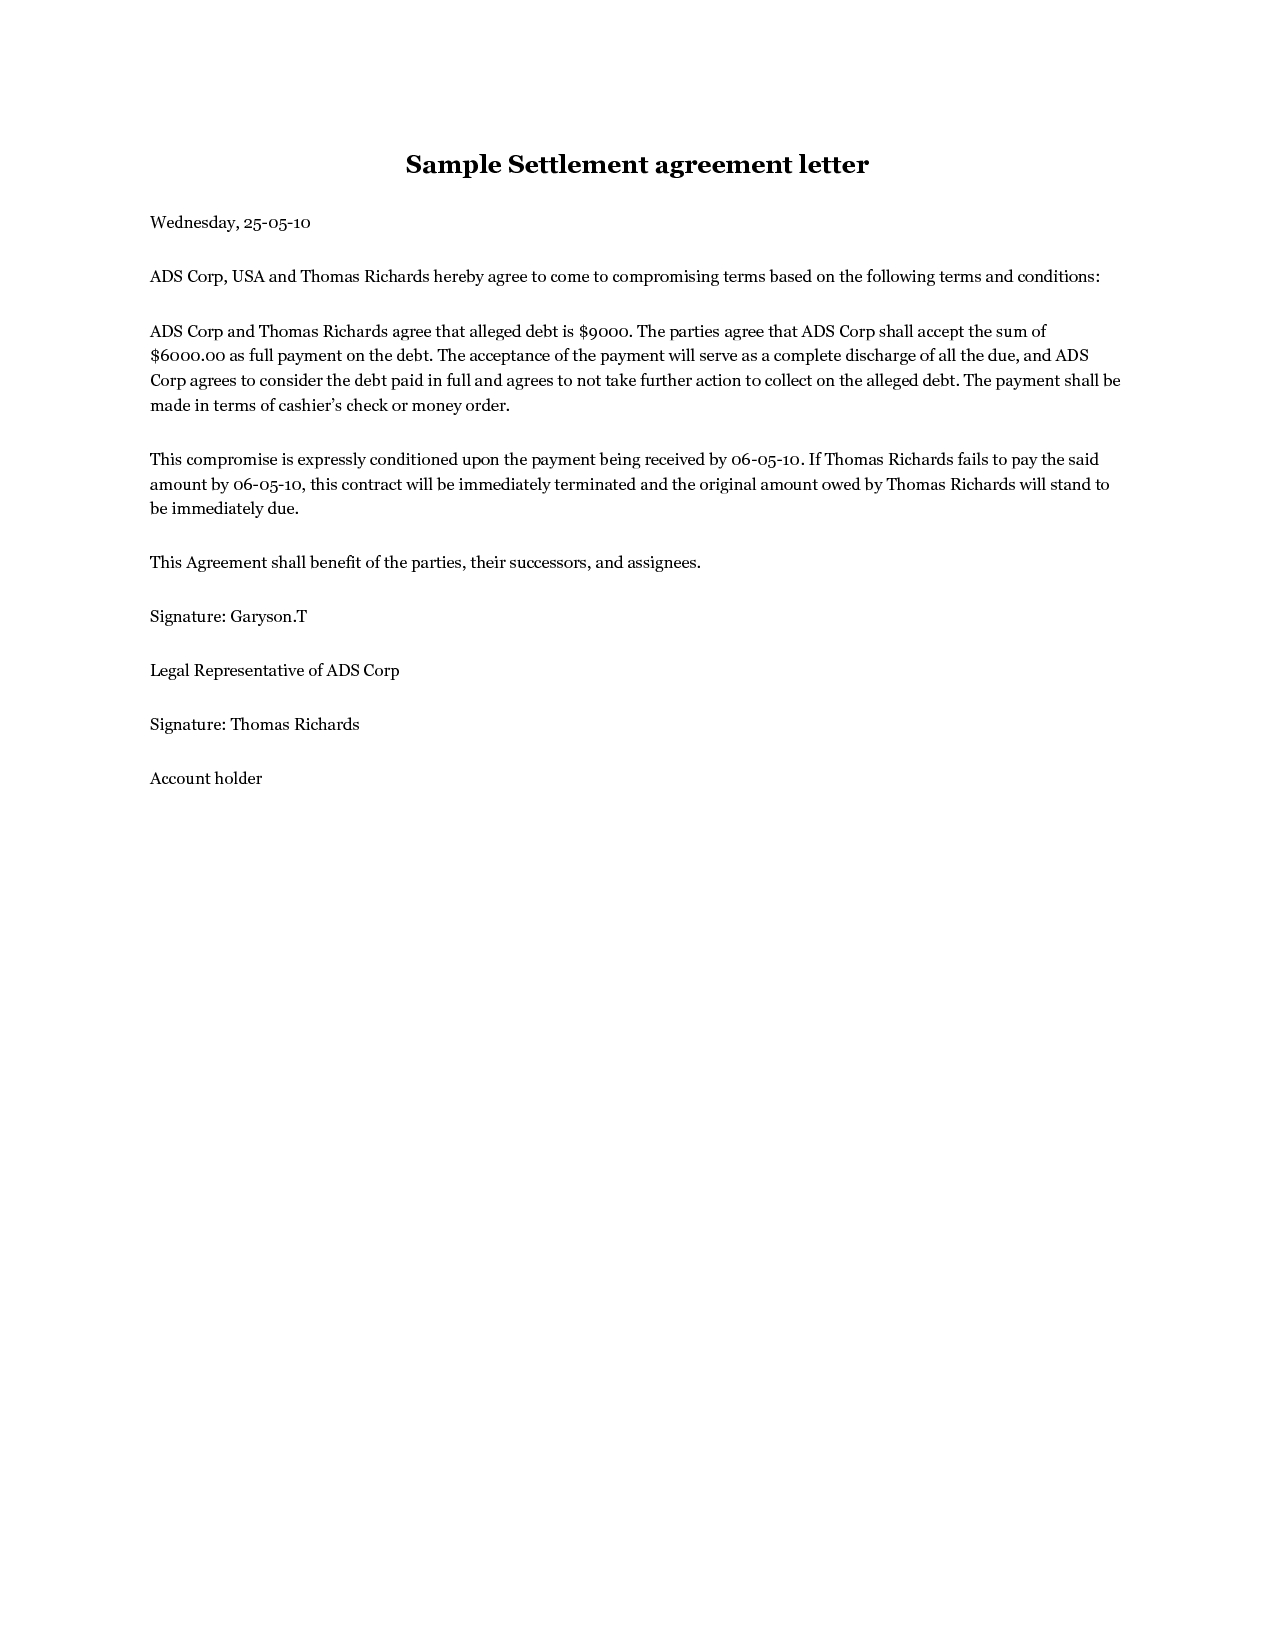 Debt Settlement Agreement Letter Template - Settlement Agreement Letter A Debt Settlement Agreement Letter